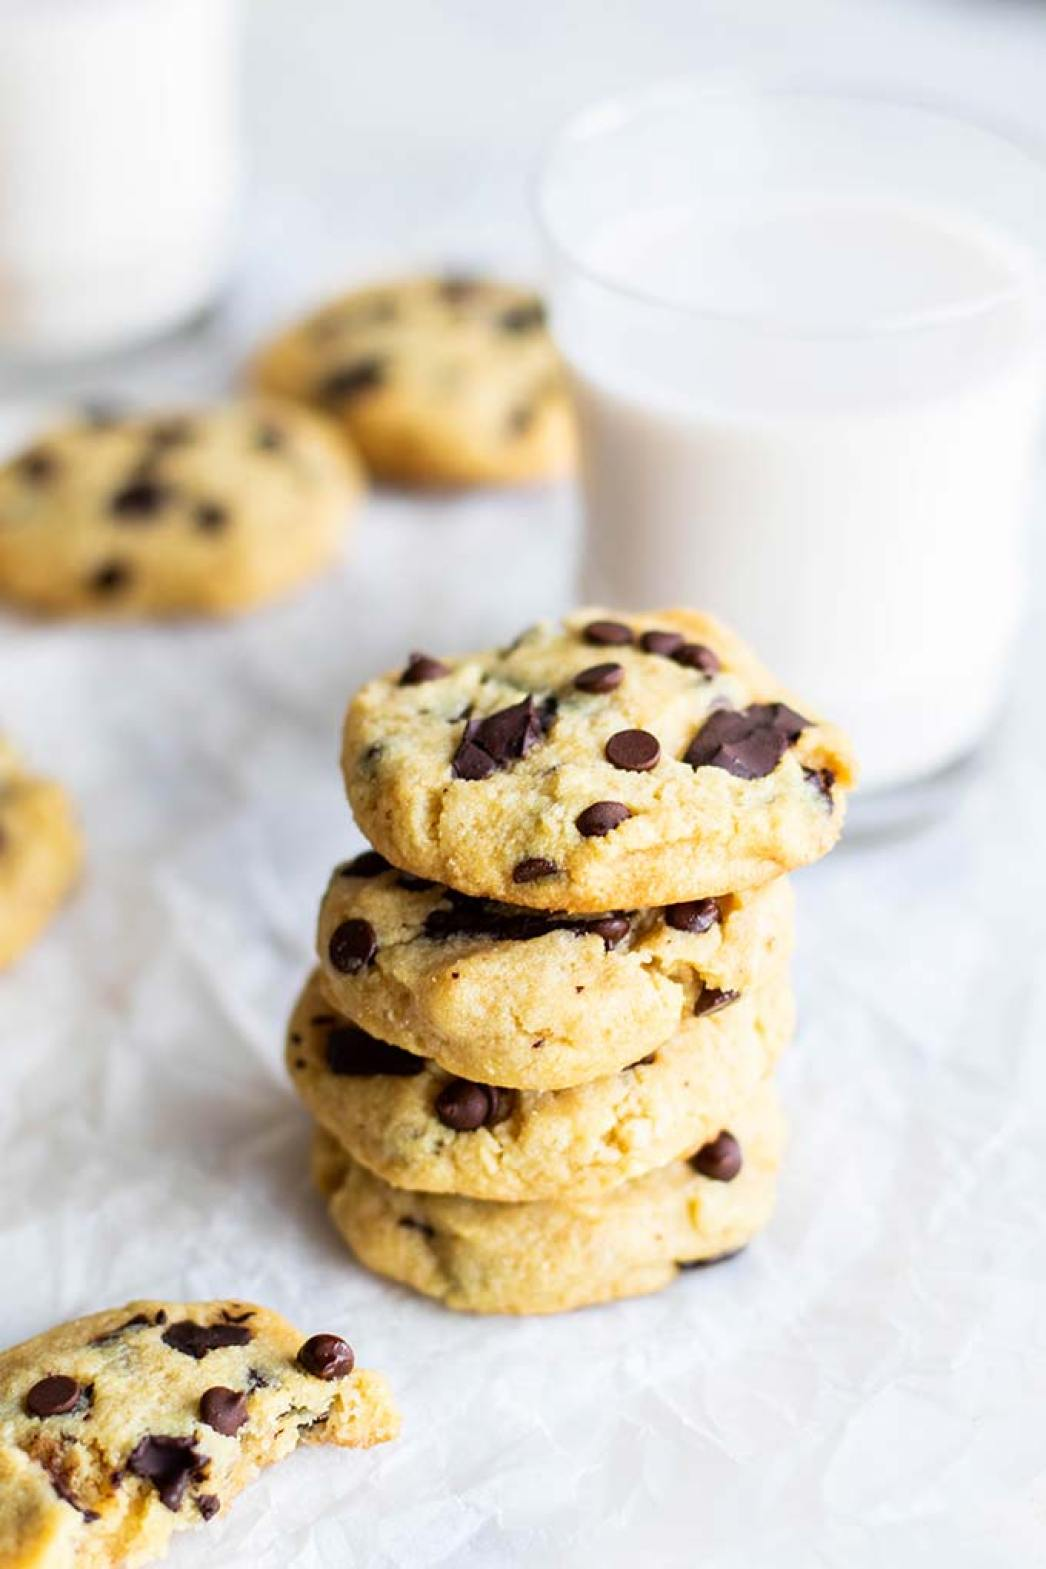 10 Best Chocolate Chip Cookies